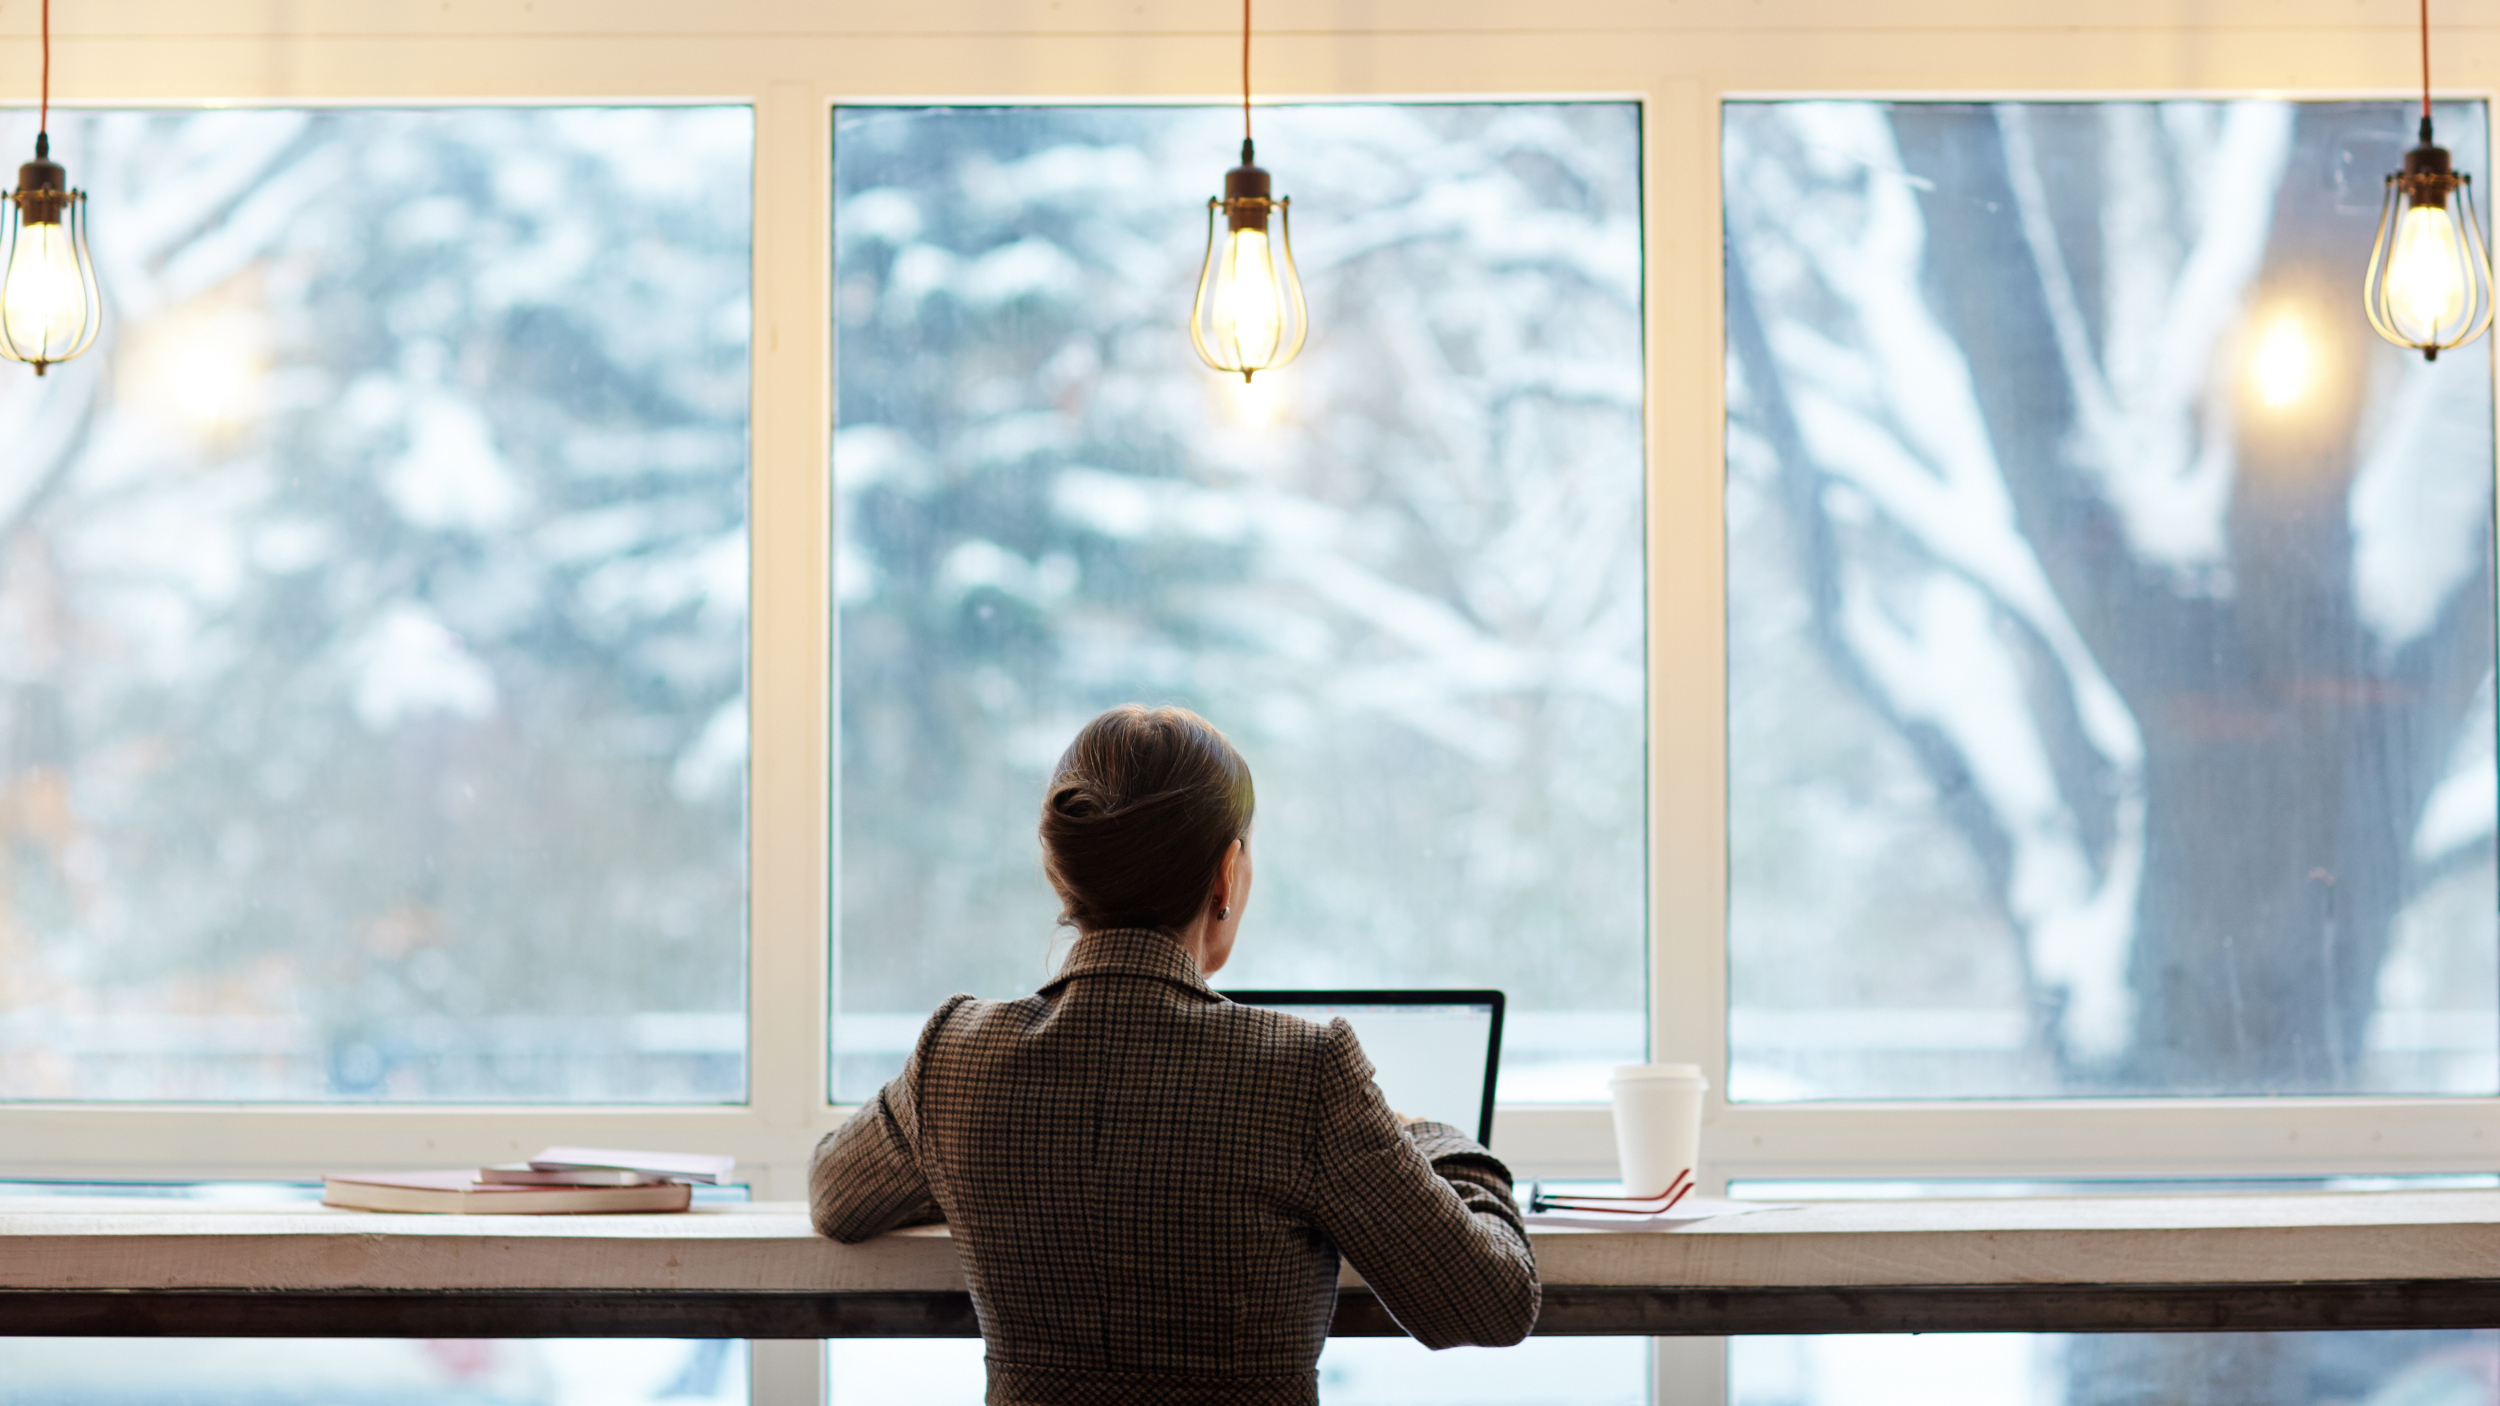 Behind view of a businessperson working at a high table at the window of a cafe